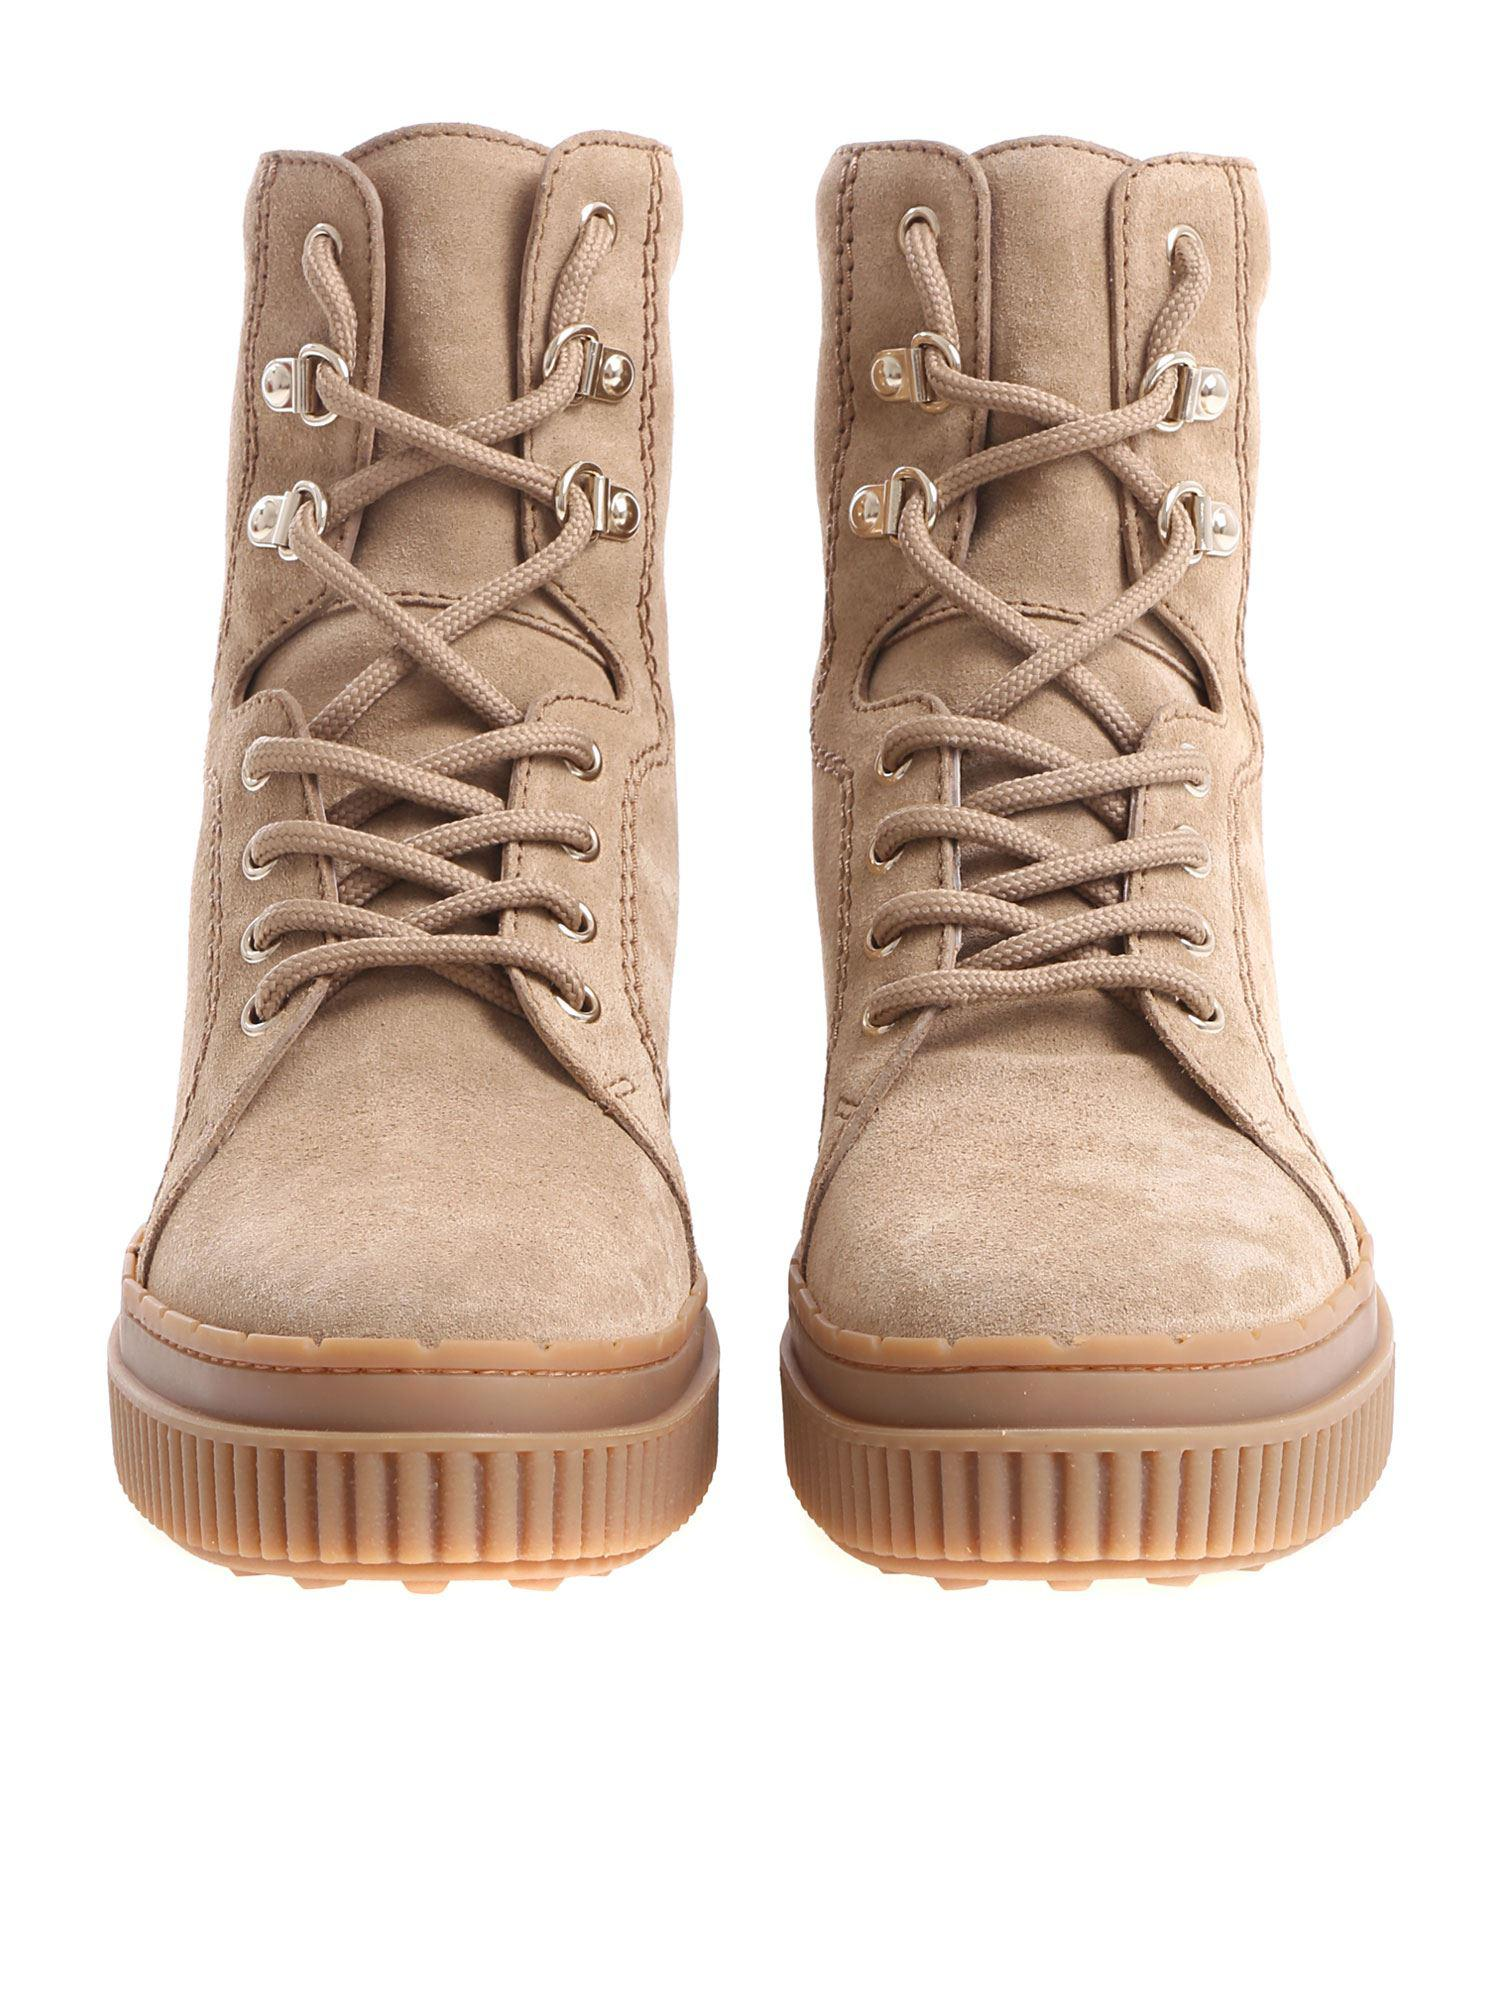 huge selection of 6bab5 b96f1 tods-beige-Beige-Ankle-Boots-With-Laces.jpeg